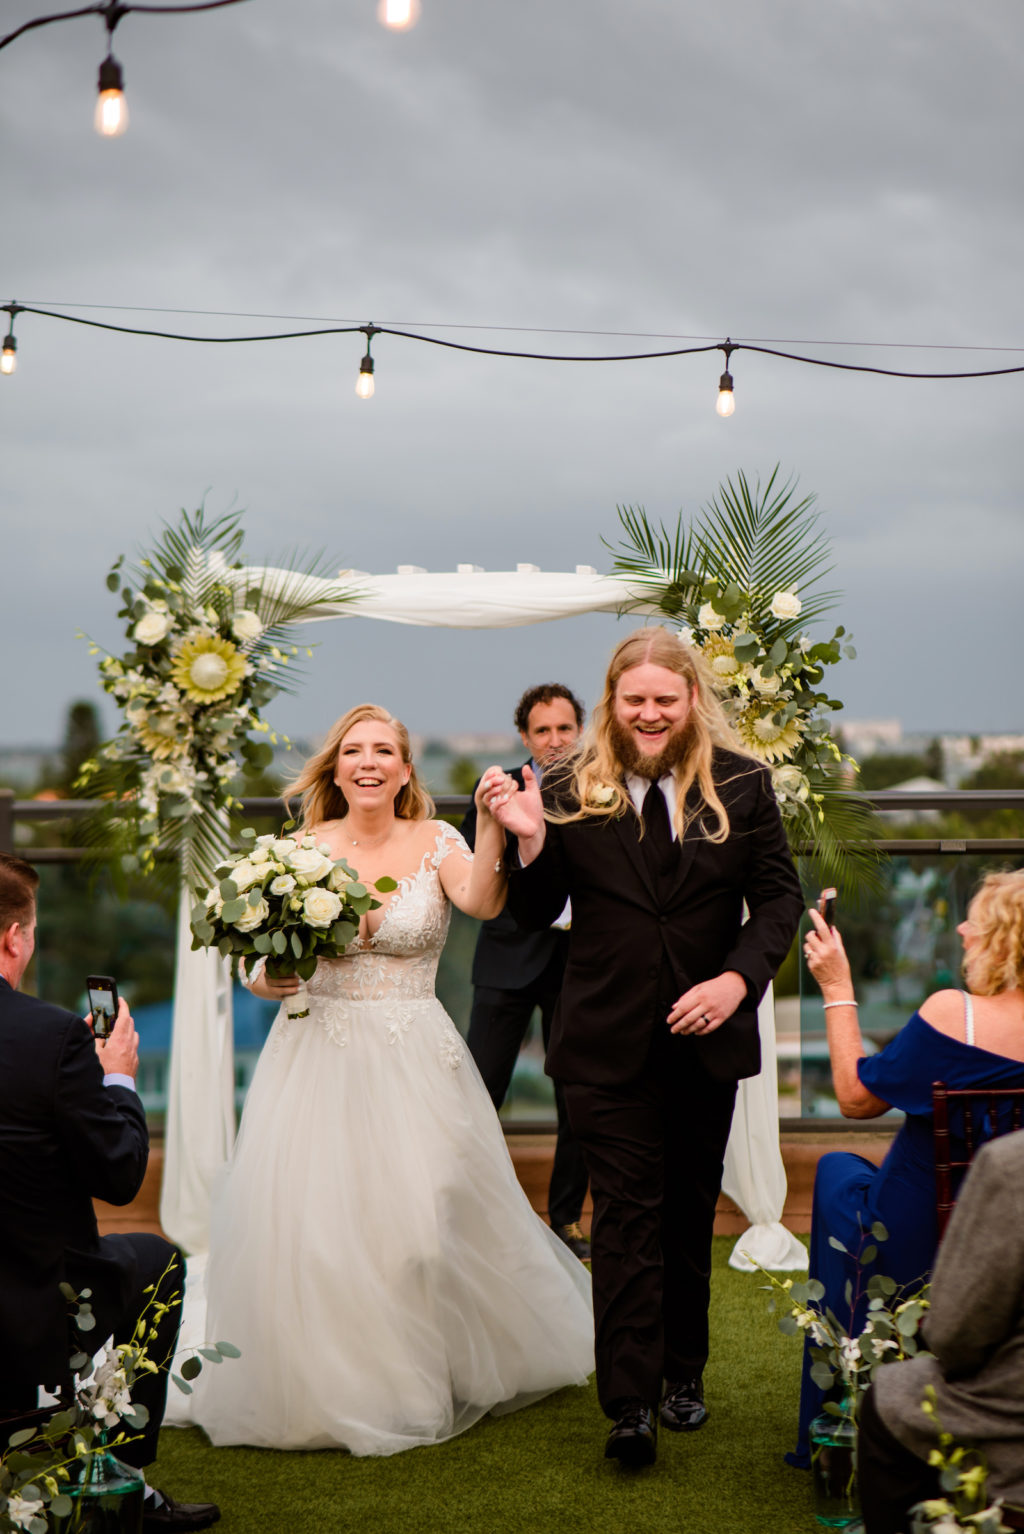 Florida Bride and Groom Wedding Ceremony Exit, Boho Neutral Tropical Wedding Ceremony Decor, Arch with Lush Floral Arrangements, Eucalyptus, King Proteas, White Florals and Palm Fronds | Tampa Bay Wedding Planner Perfecting the Plan | Wedding Florals Iza's Flowers